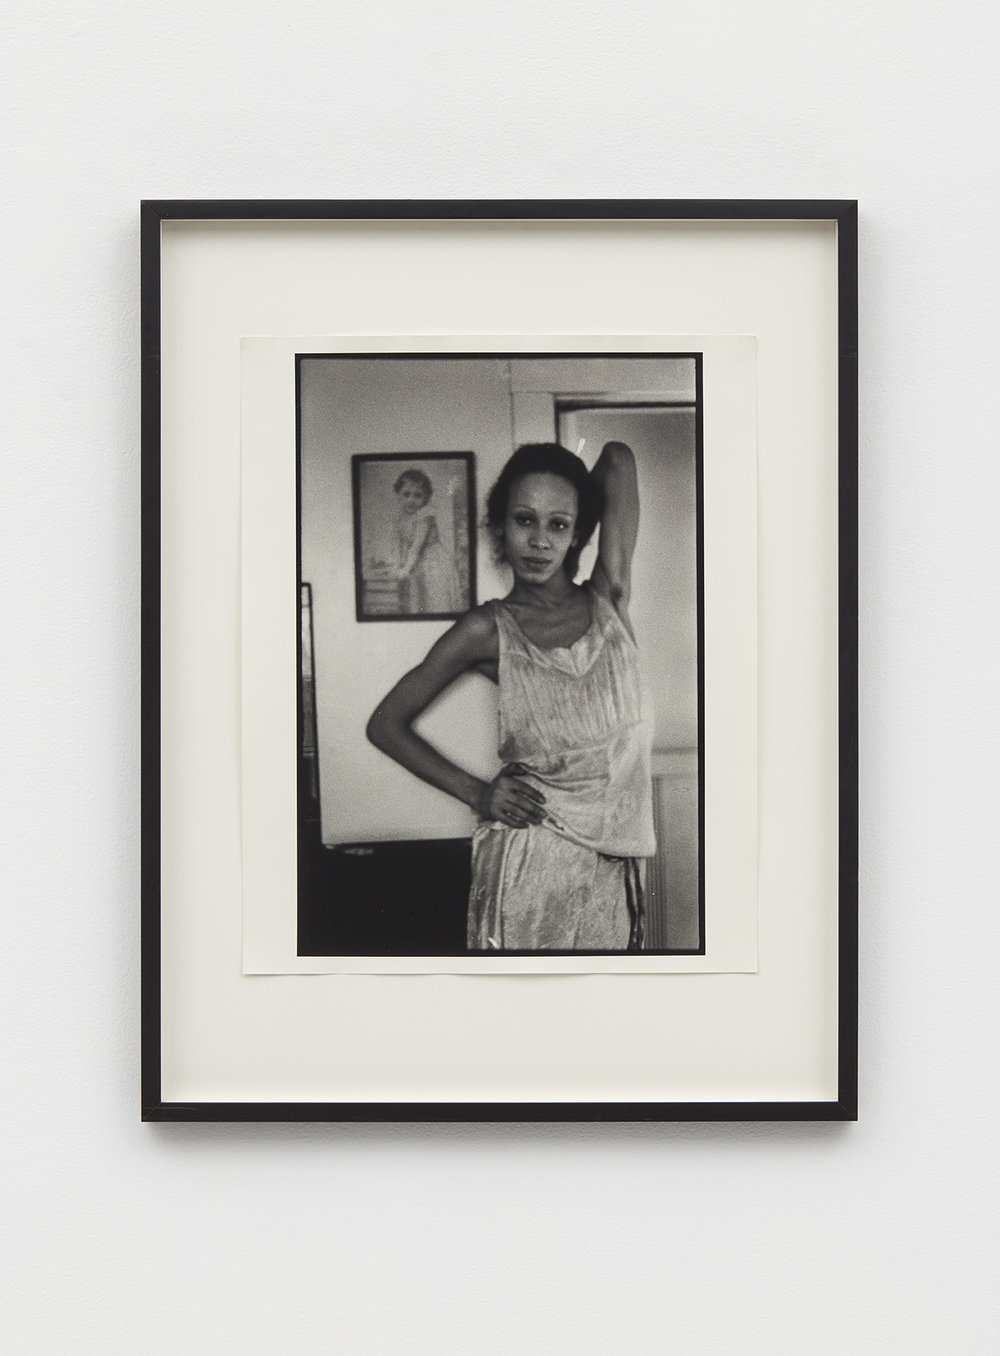 Nan Goldin, Bea in The Kitchen, 1972 silver gelatin print 72 x 56 cm - 28 11/32 x 22 1/16 inches (framed)